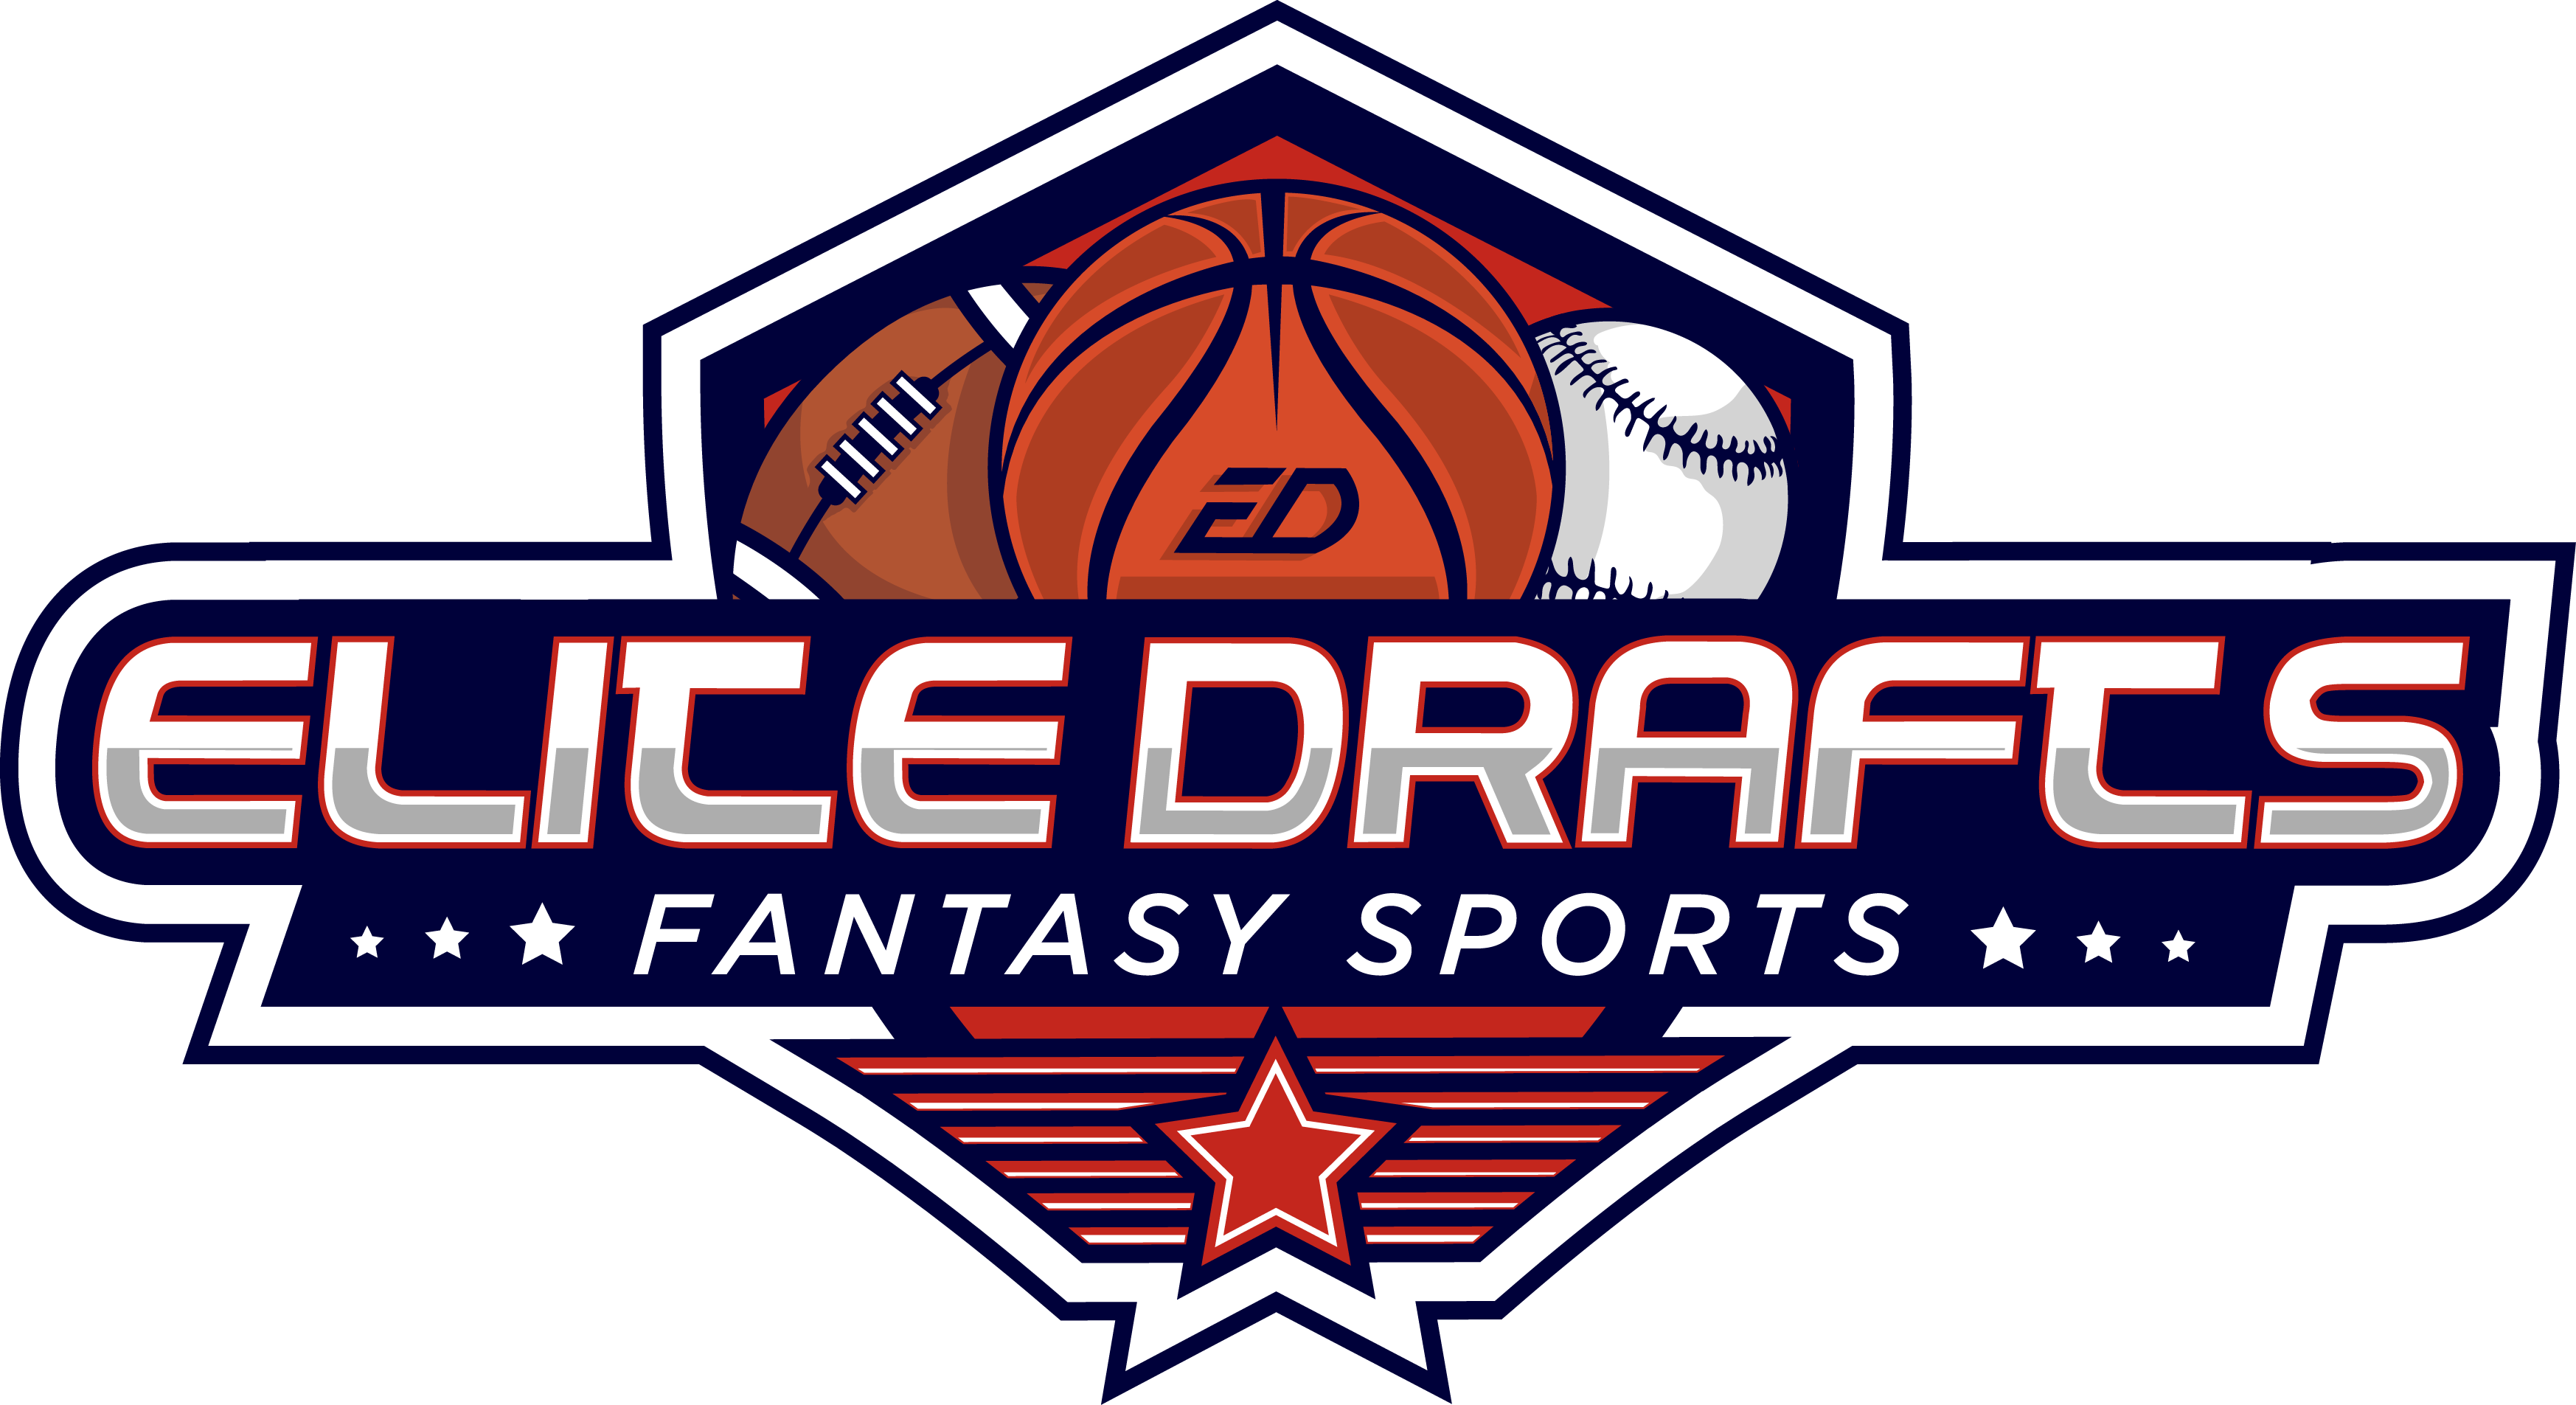 New Daily Fantasy Sports Website Needs a Standout Logo!